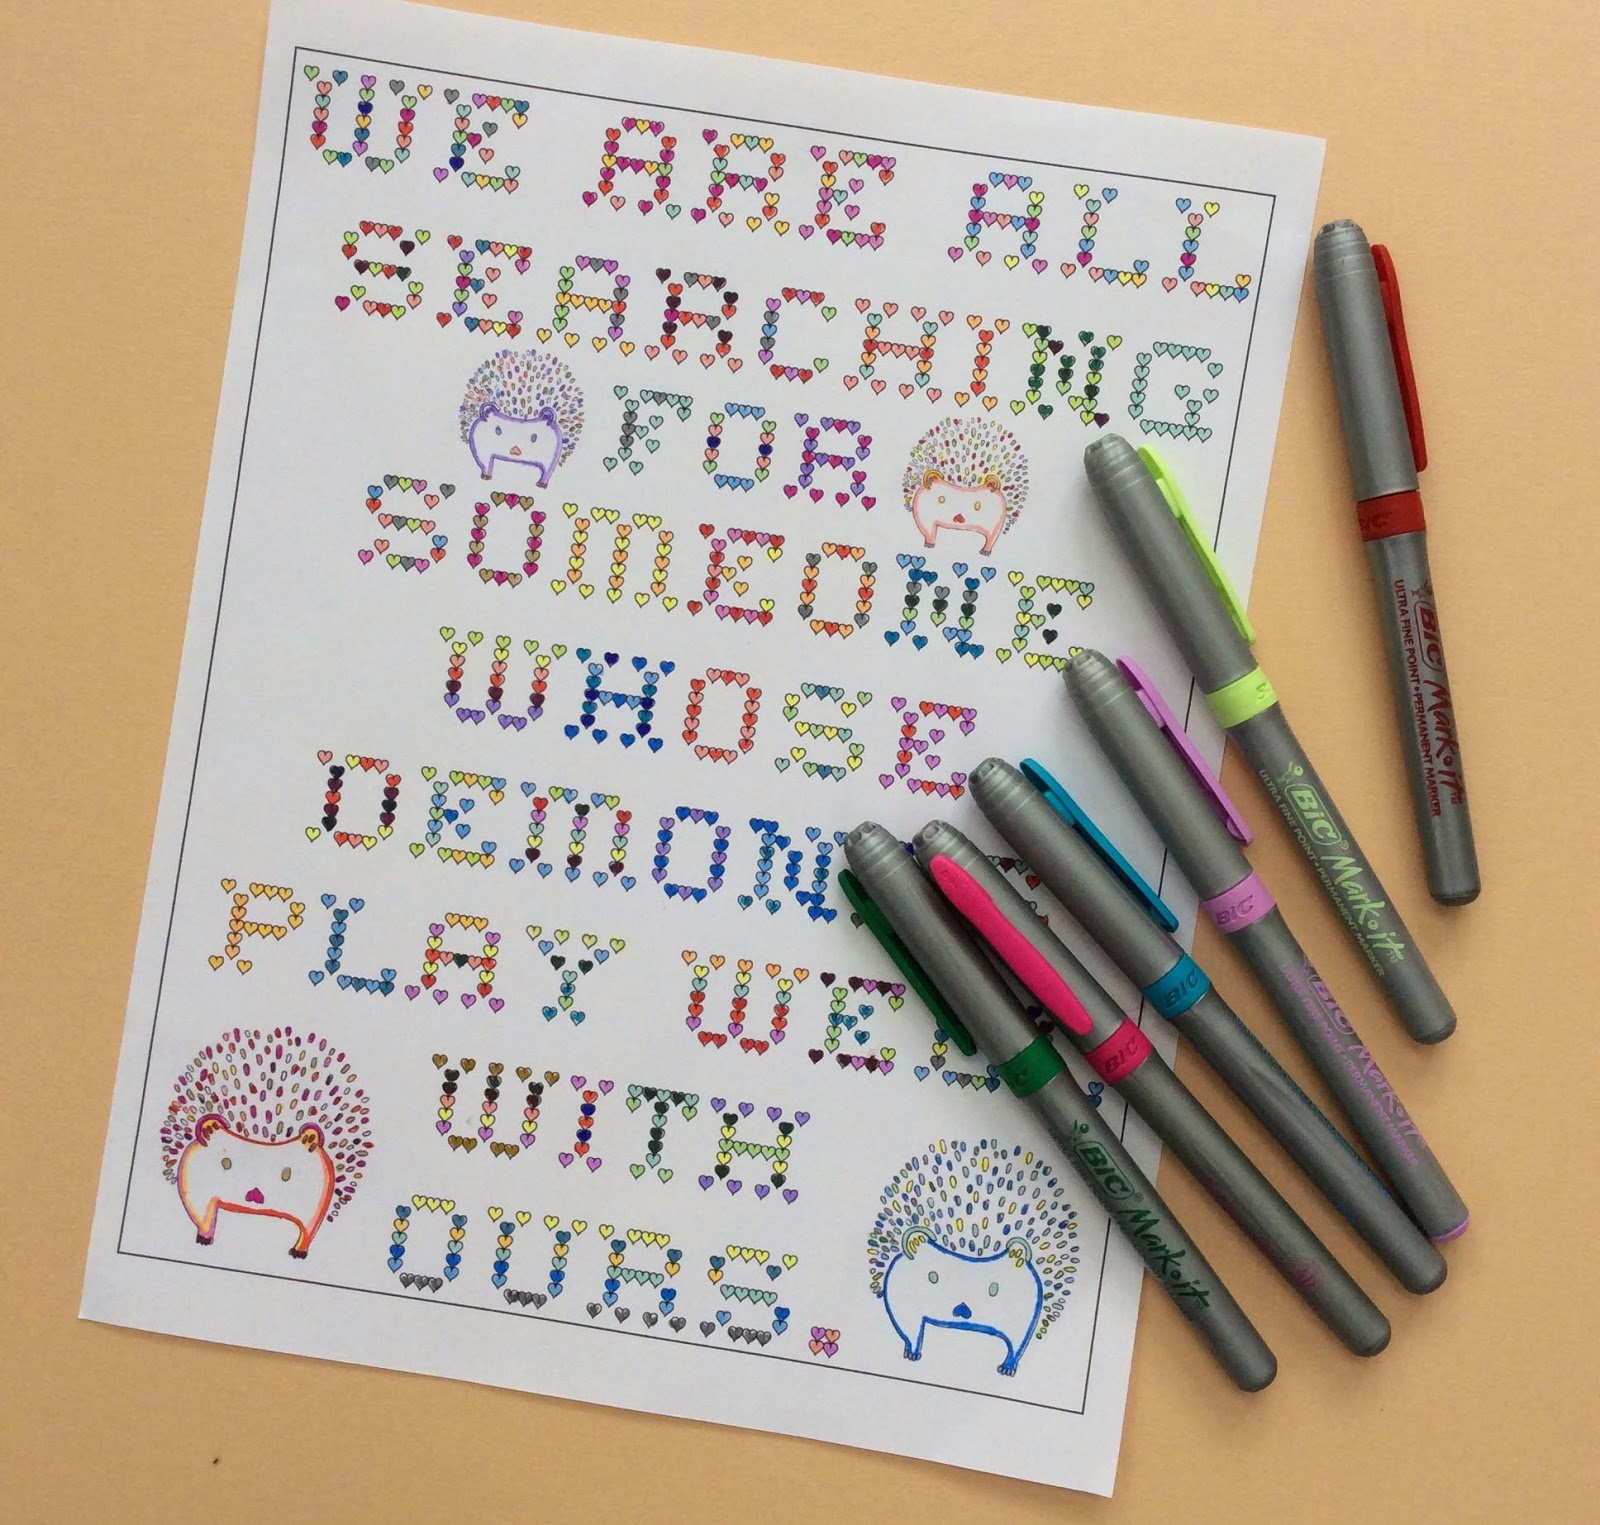 We are all searching for someone whose demons play well with ours, adult coloring page, quote, stefanie girard